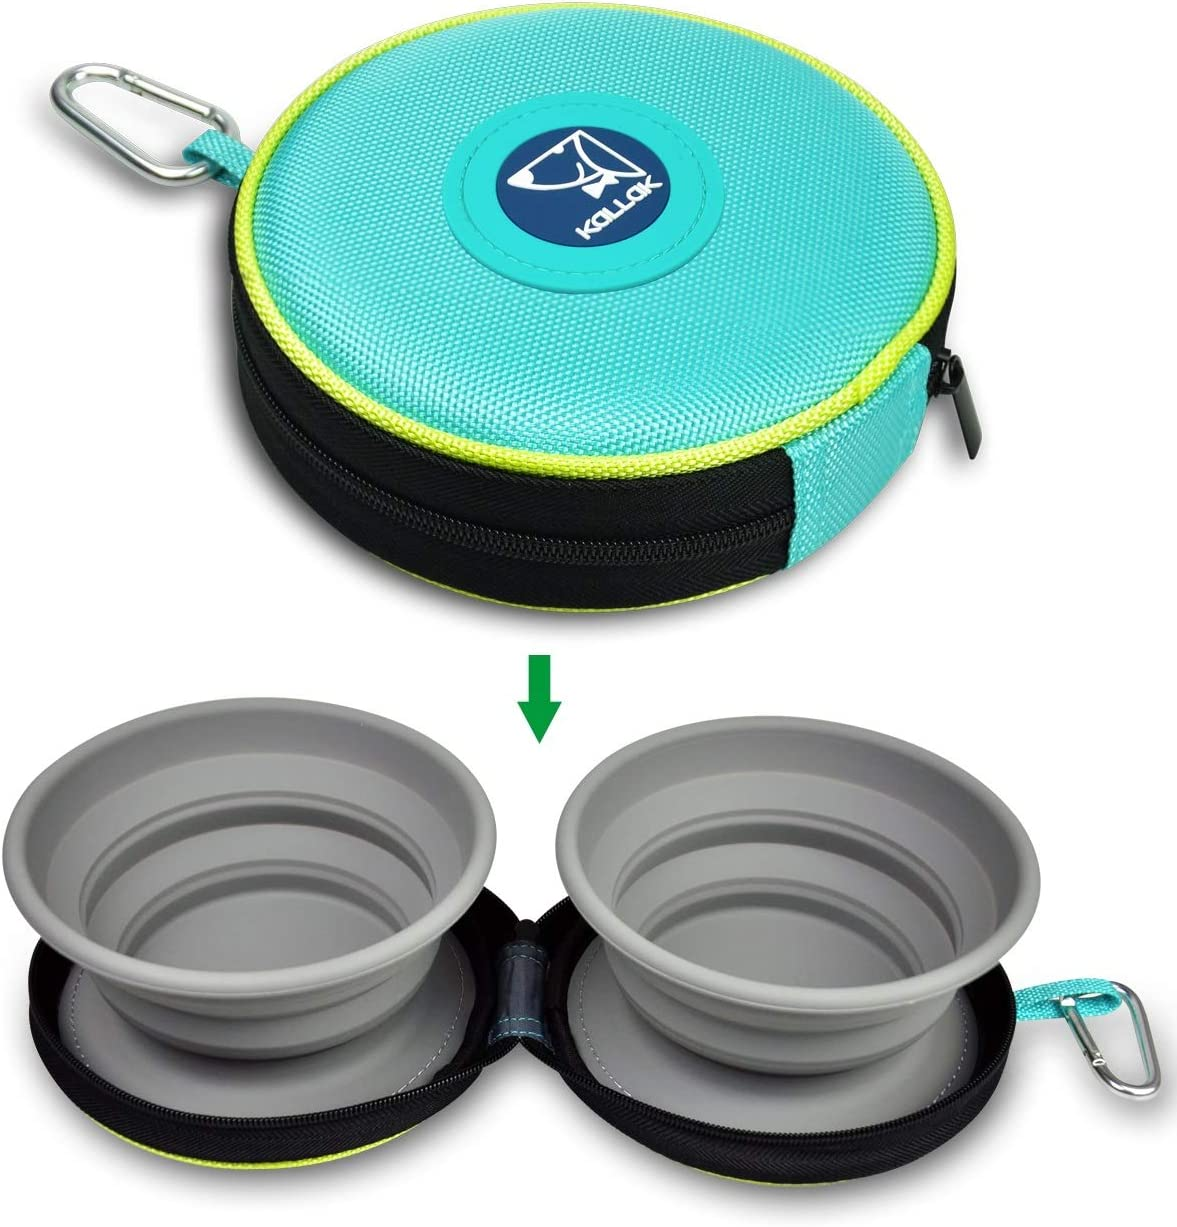 KALLAK Travel Twin Pet Bowls for Dogs or Cats, Collapsible Silicone Bowls for Food and Water Feeding, Foldable Zip Up Oxford Cloth Carry Case with Carabiner Clip, Portable Hiking Dog Bowl